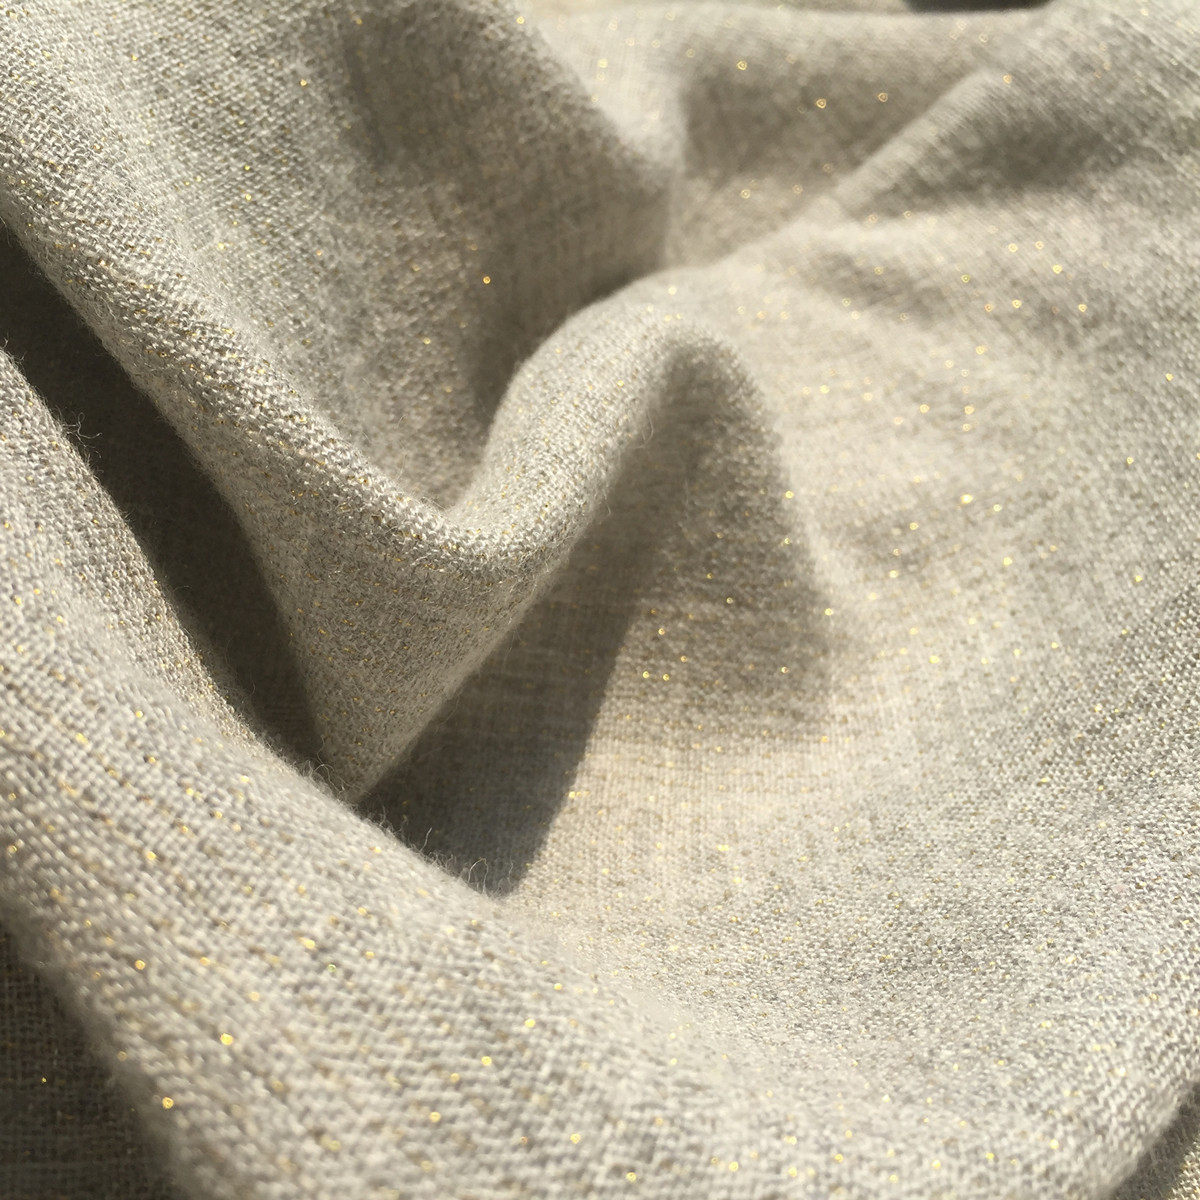 Super thin gold thread cashmere and wool fabric imported from Qing and Italy